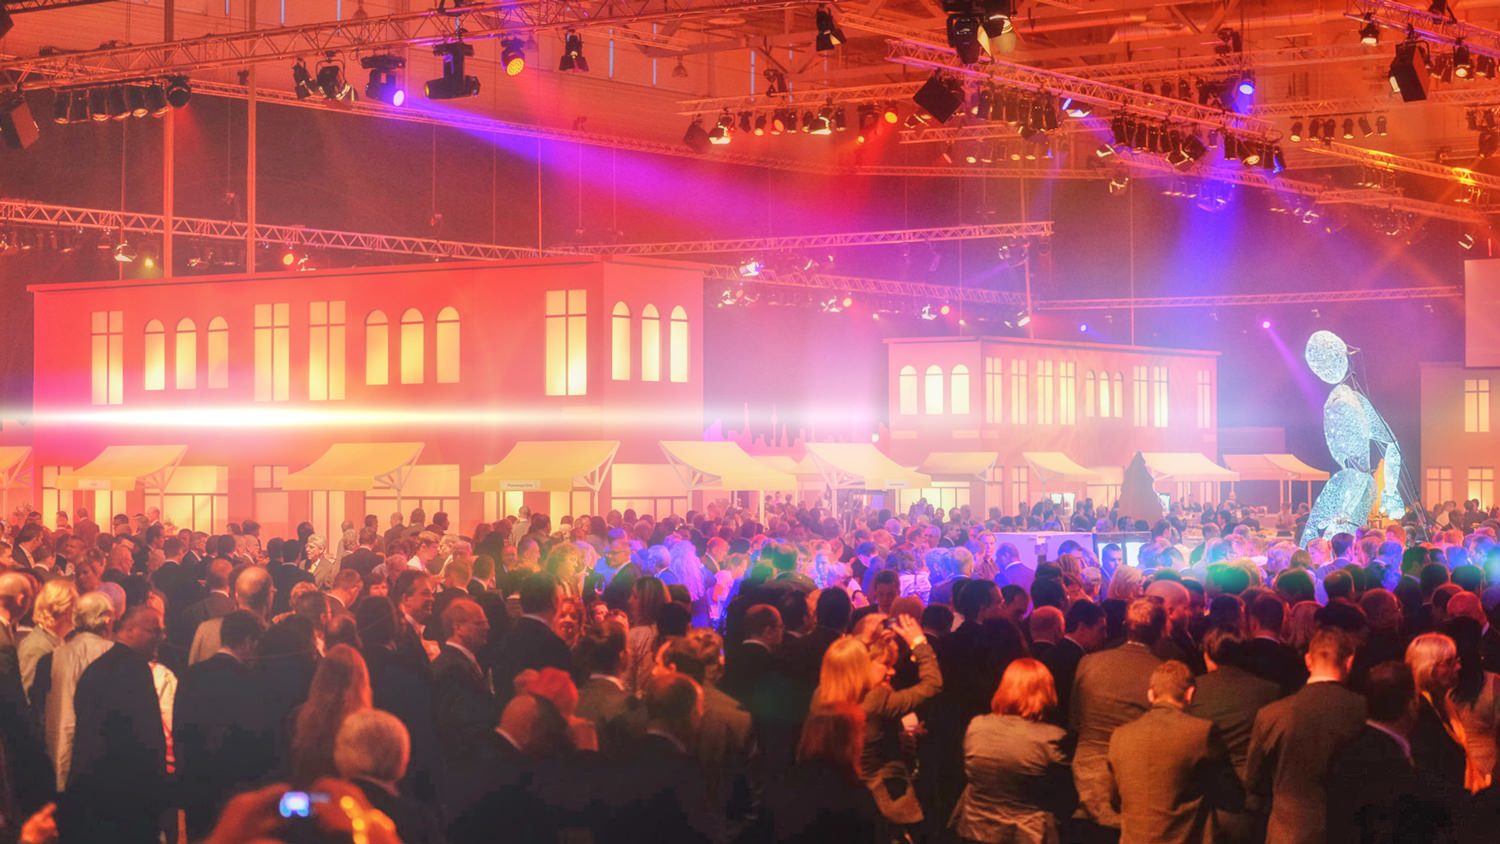 Event mit 3.500 Gästen –  event with 3,500 guests